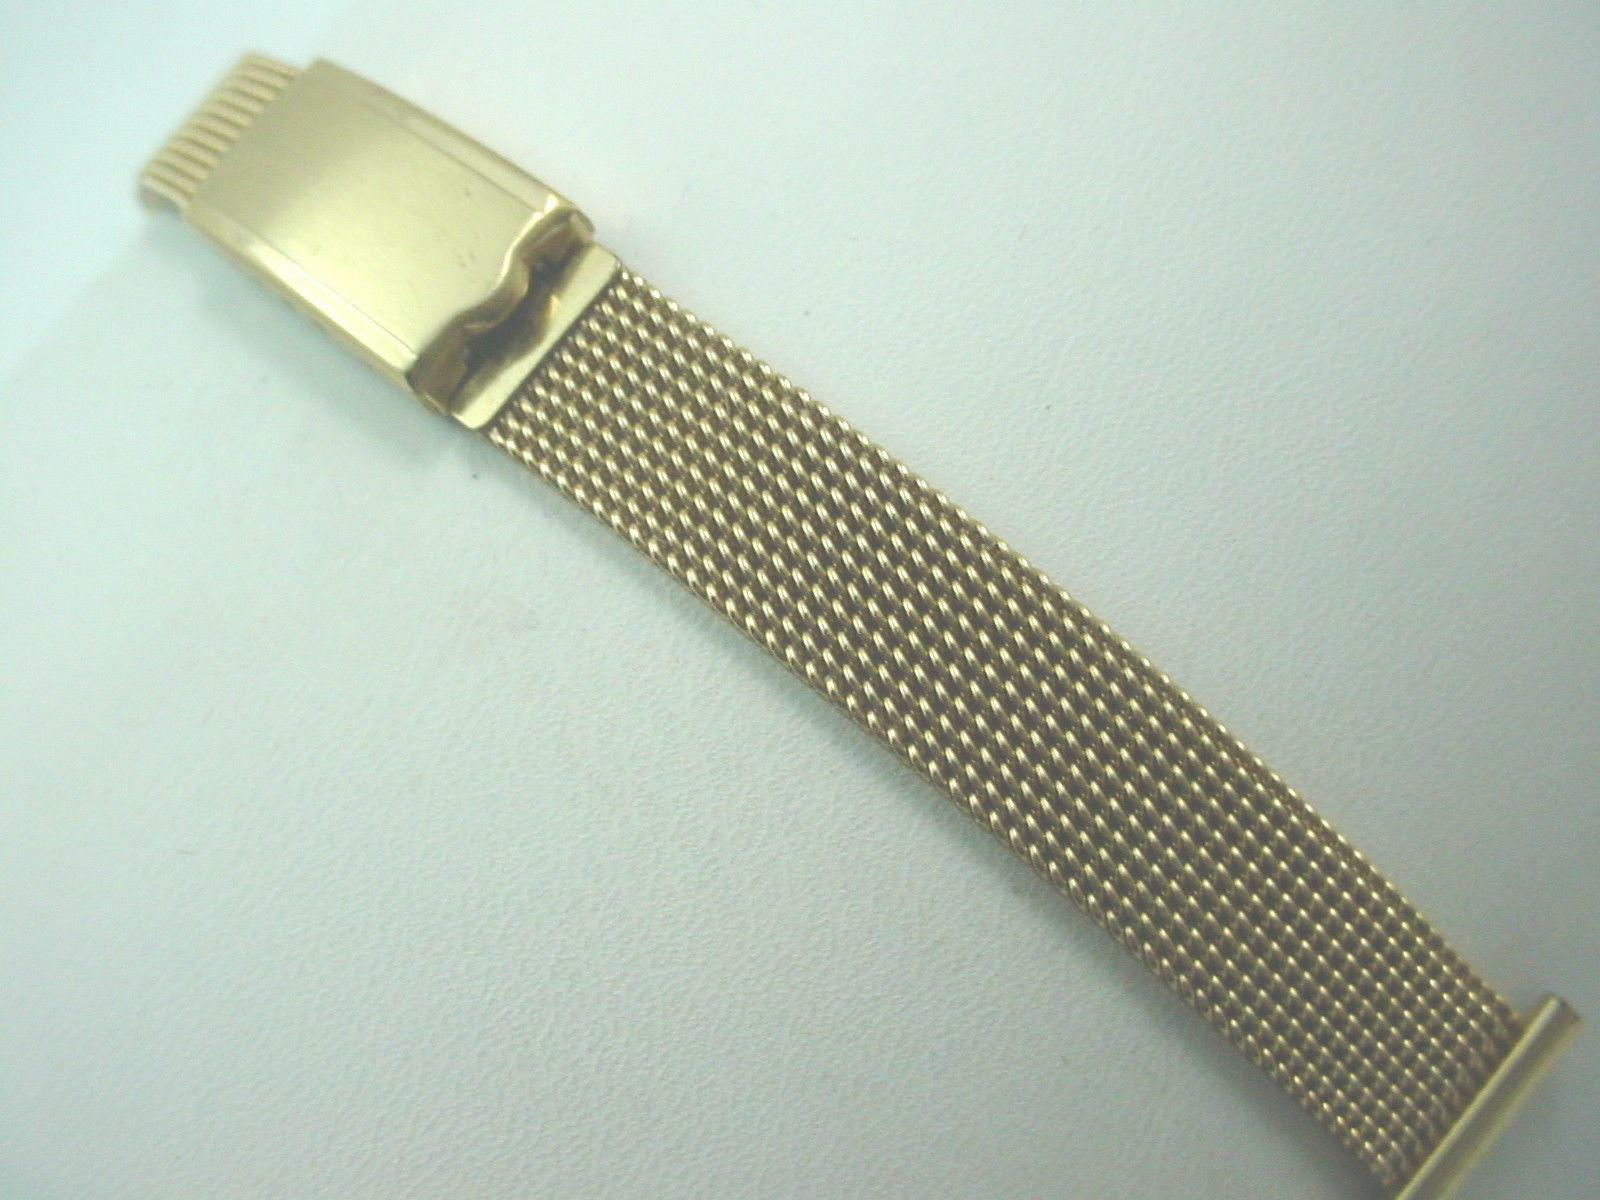 14mm Vintage JB Champion Ladies Watch Band Rolled Gold Deployment Clasp NOS